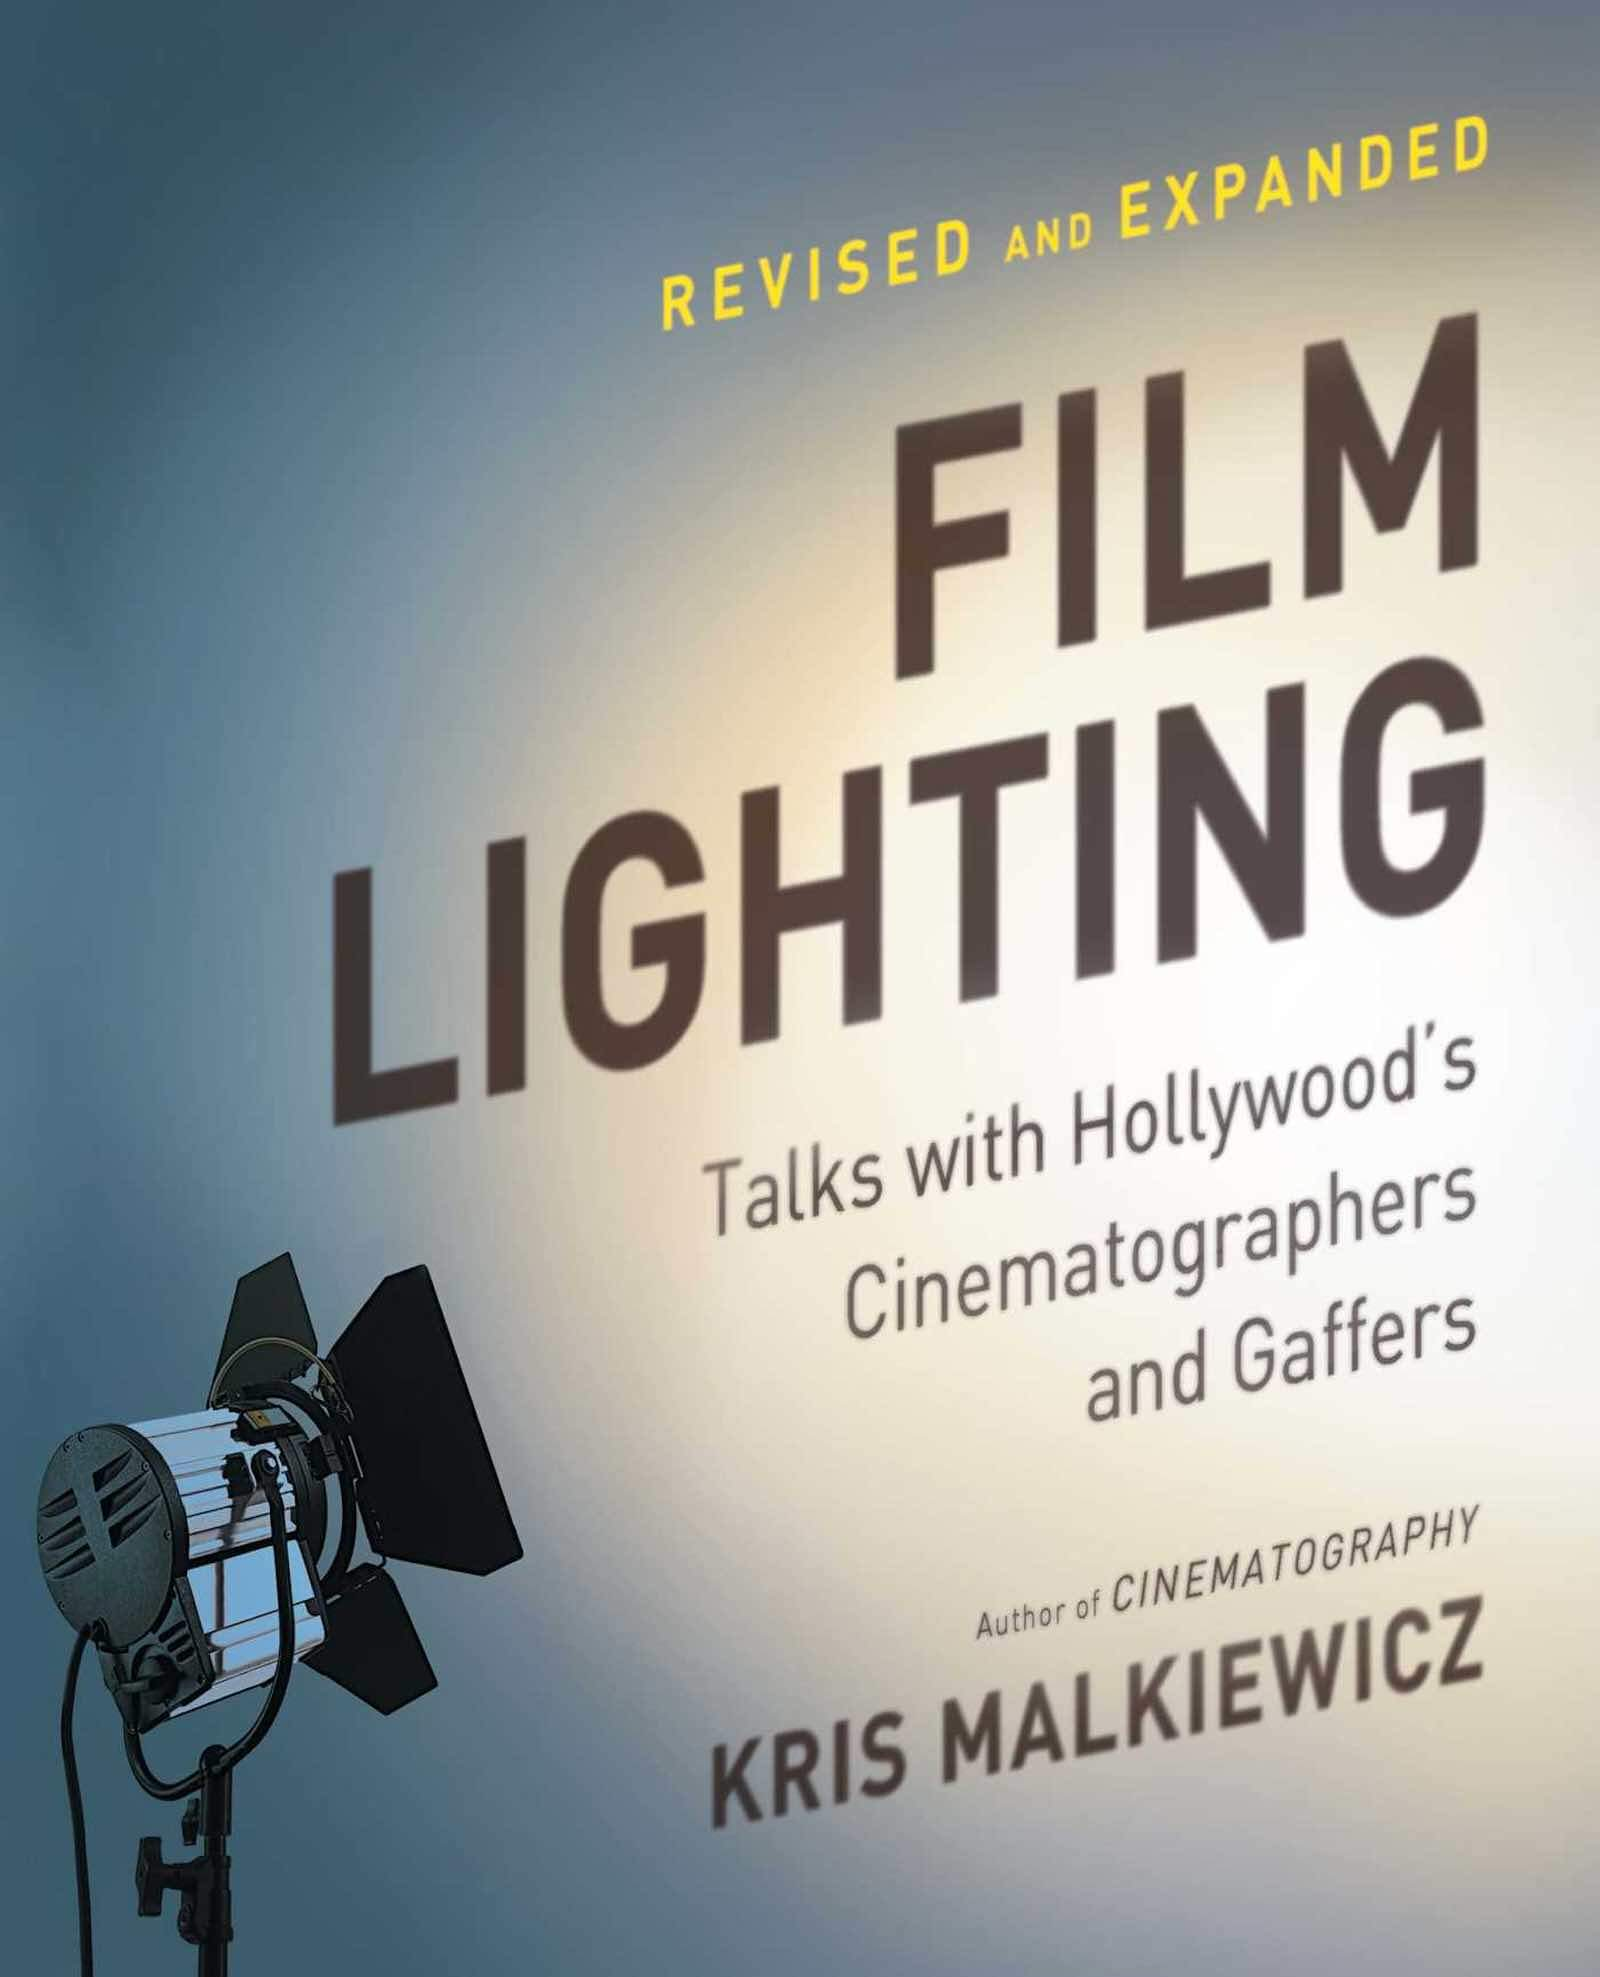 Essential Cinematography Books - Film Lighting Talks with Hollywood